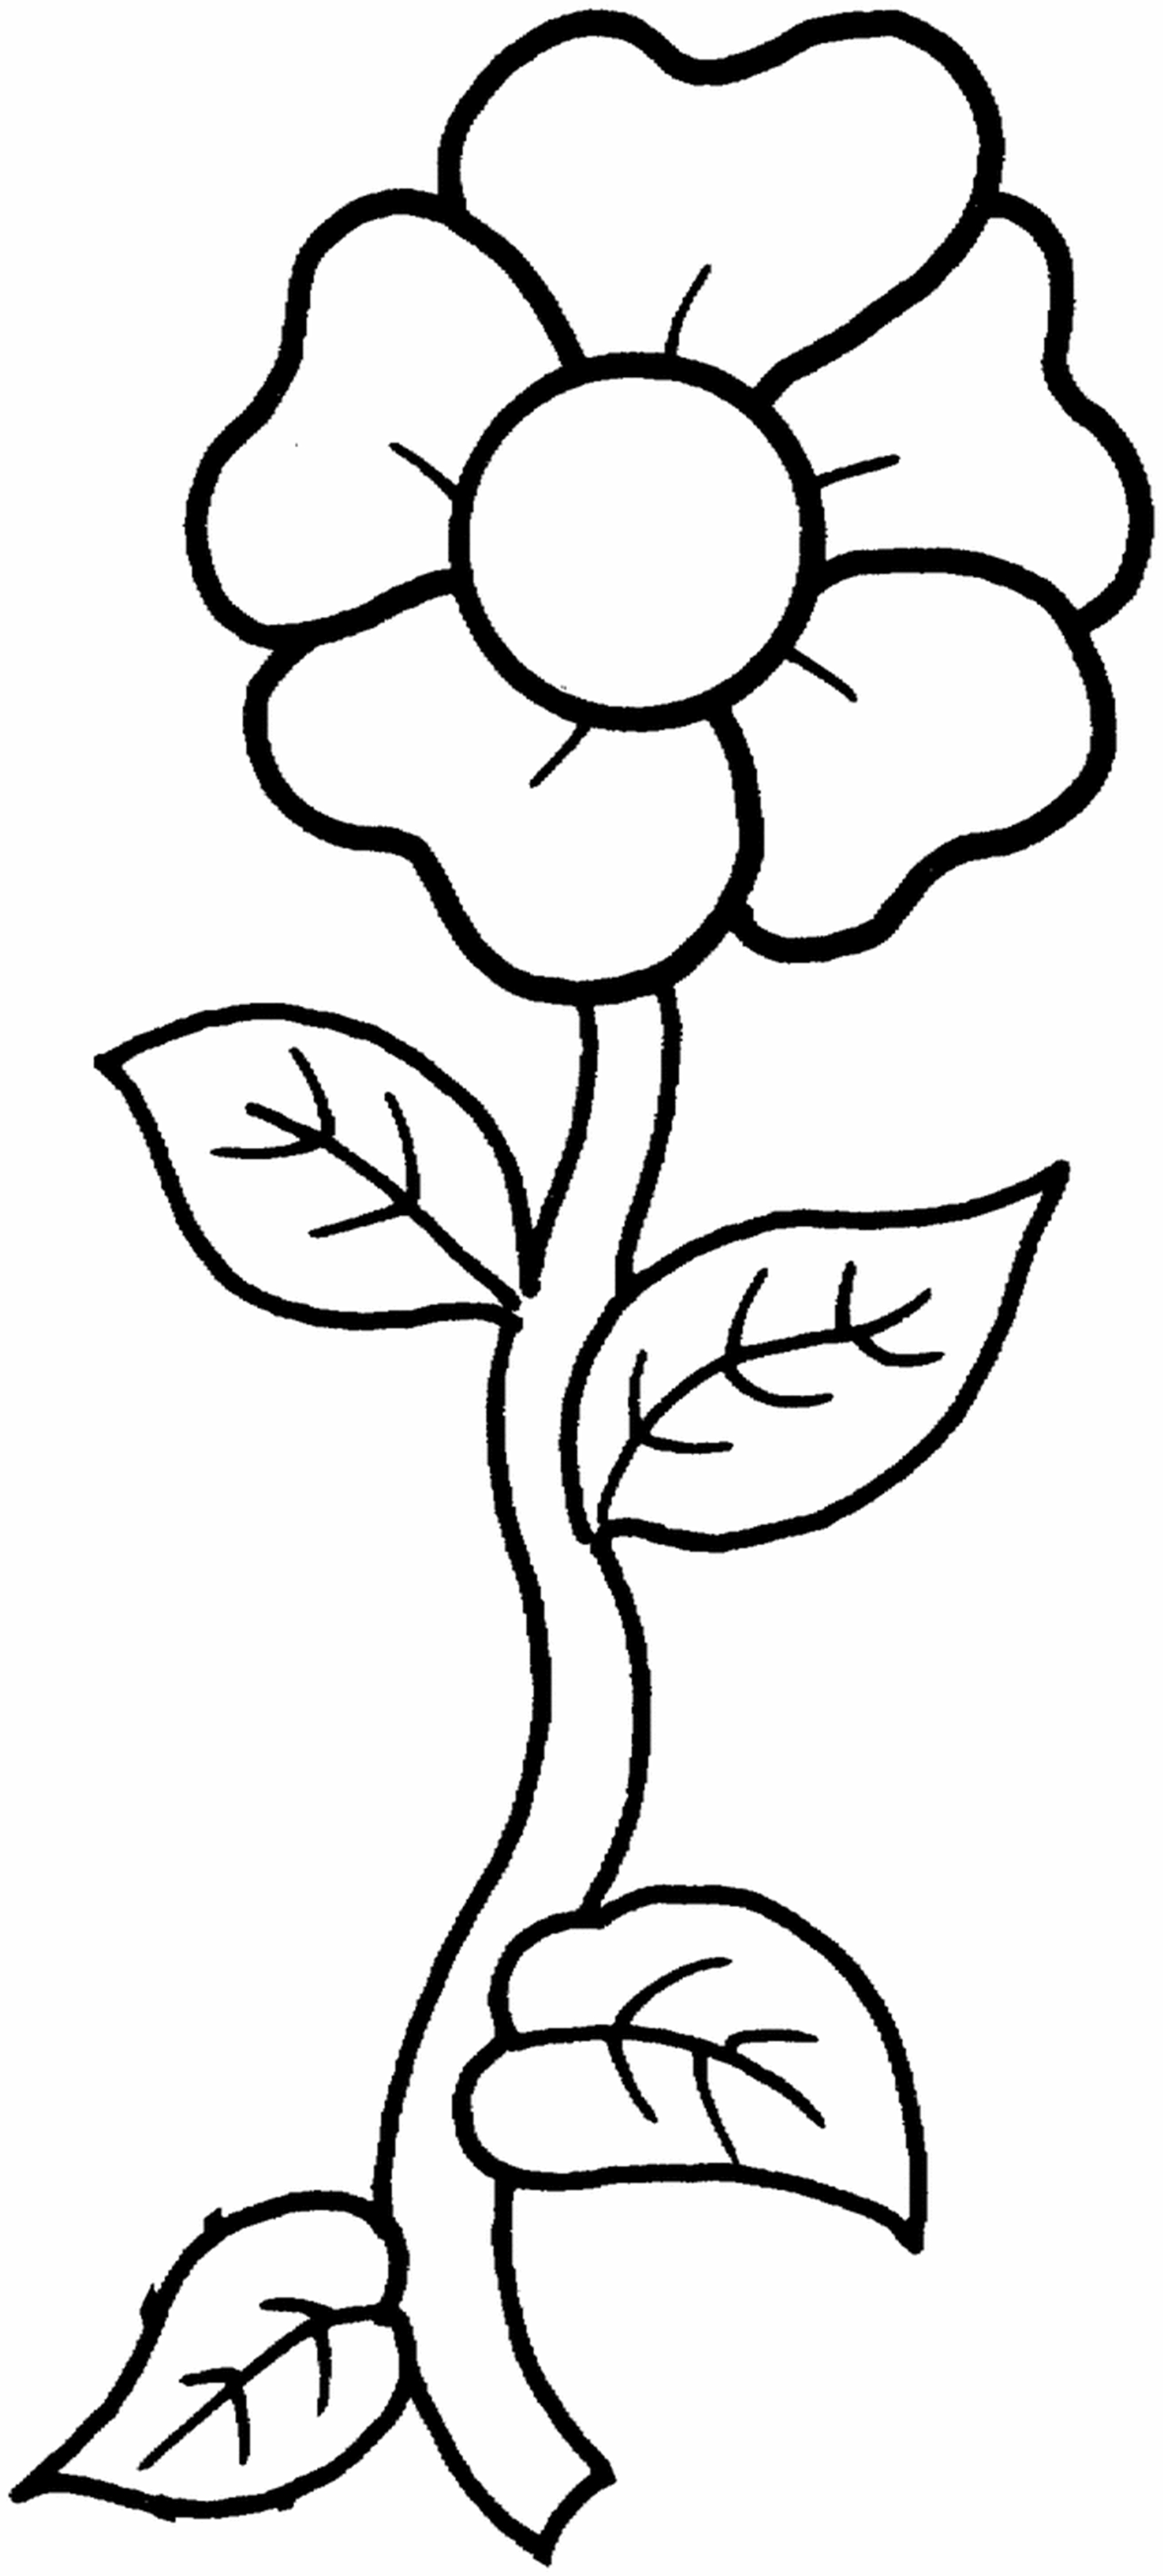 flowers to color and print flower coloring pages for adults best coloring pages for flowers print to color and